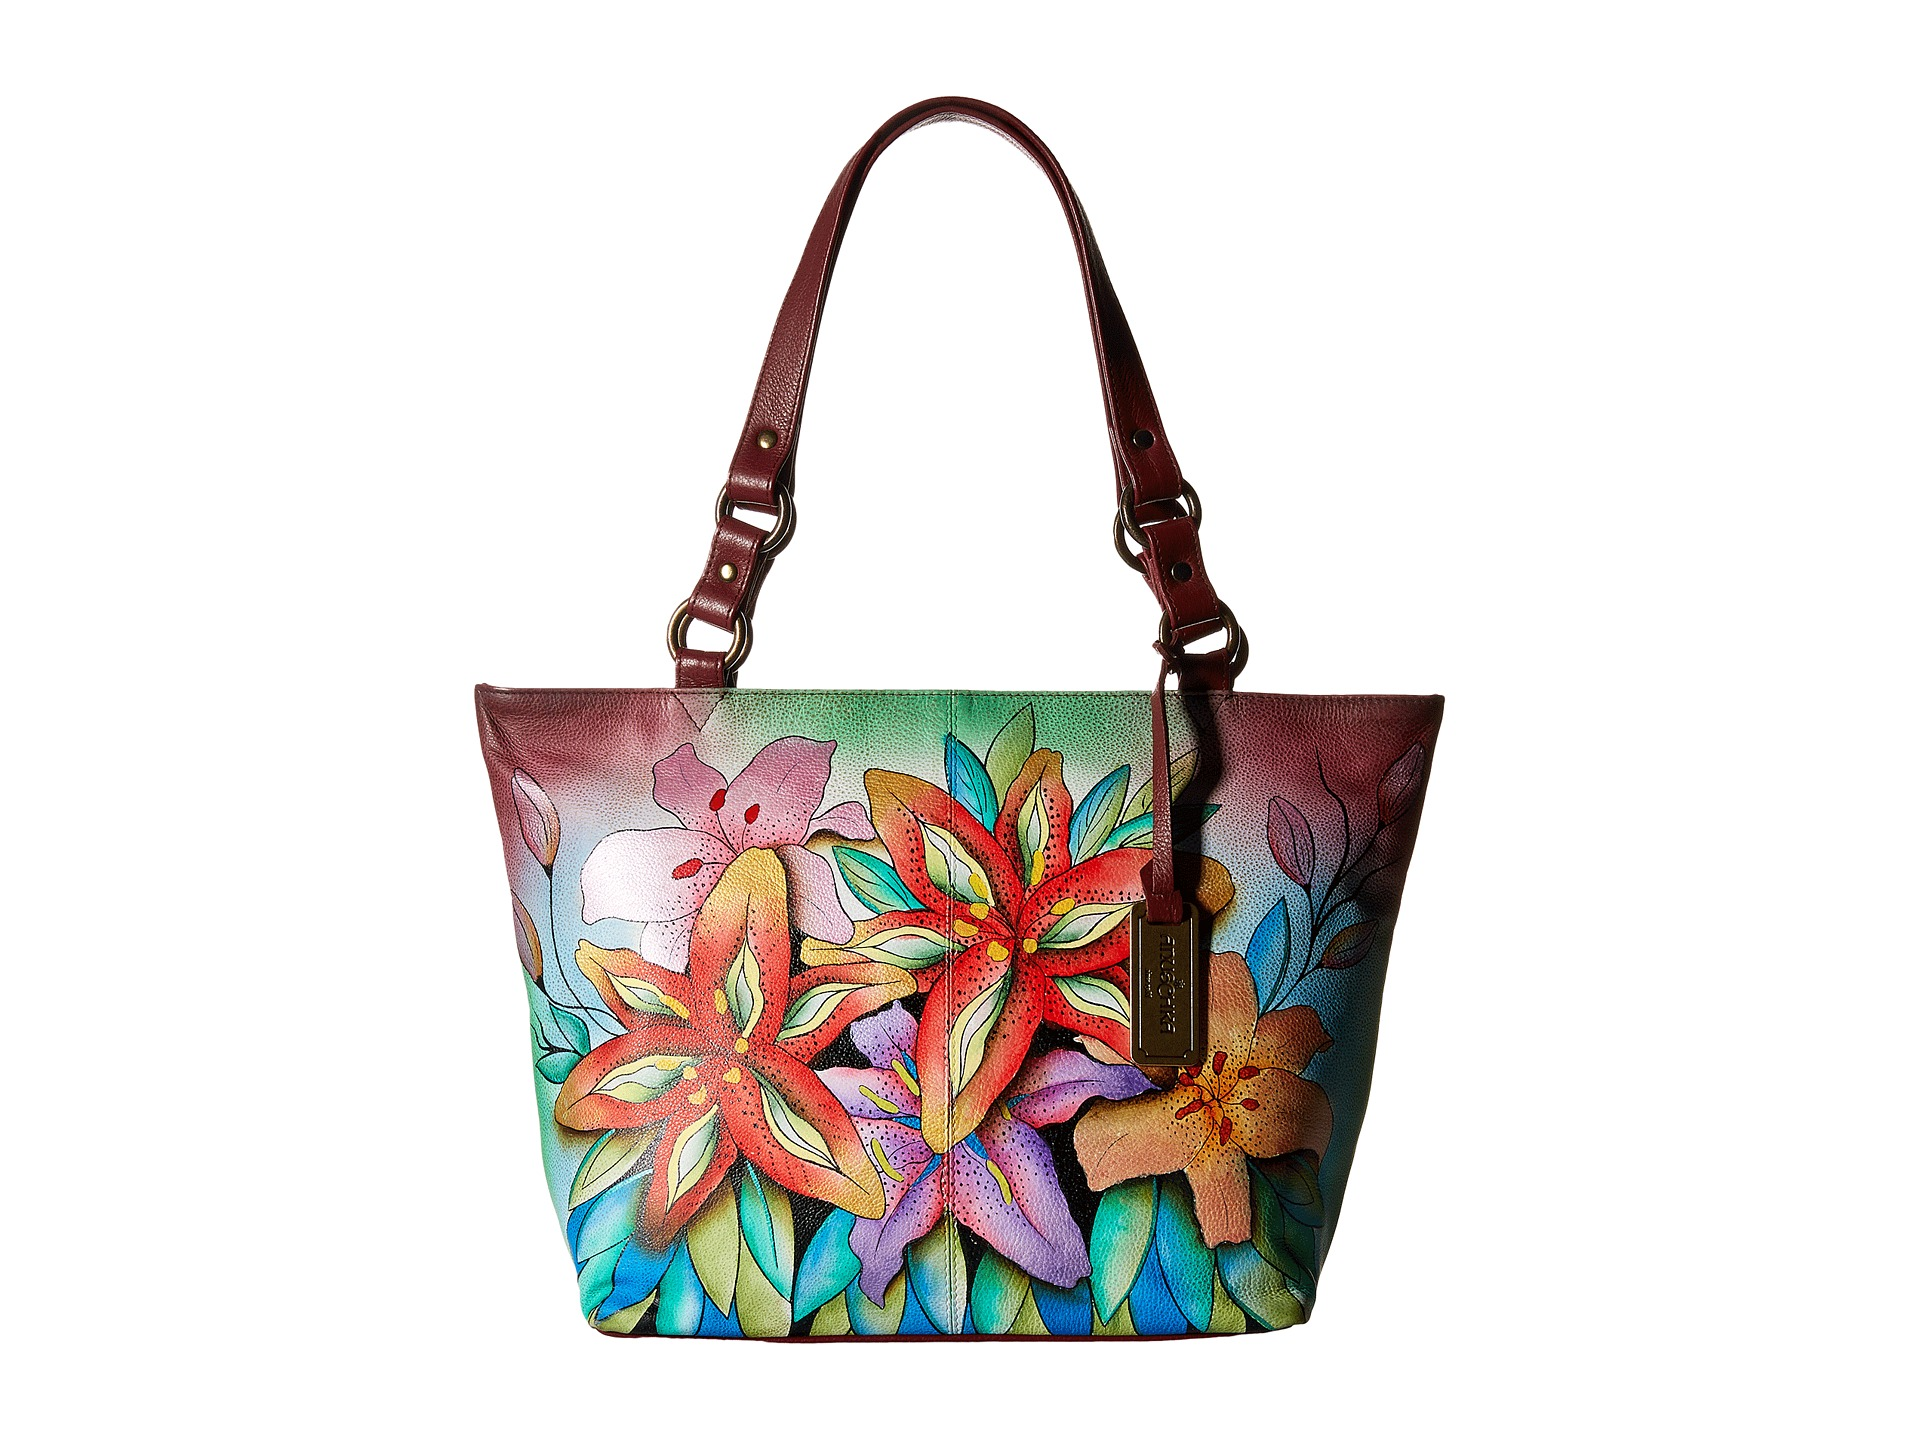 Anuschka Handbags 524 - Zappos.com Free Shipping BOTH Ways